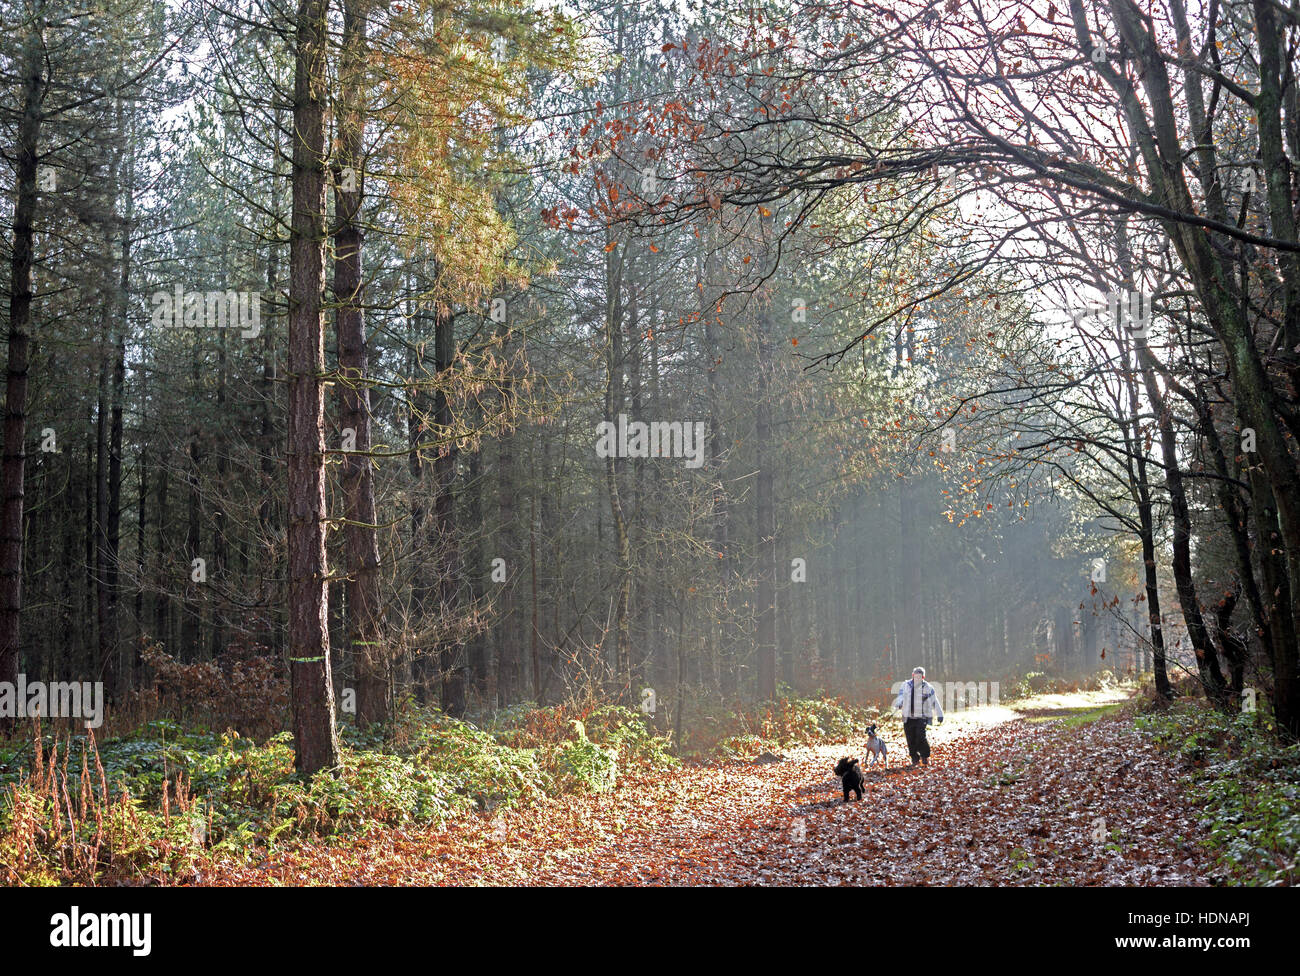 Blidworth, Nottinghamshire, UK. 14th Dec, 2016. Unusually warm weather for winter brings out the dog walkers to - Stock Image